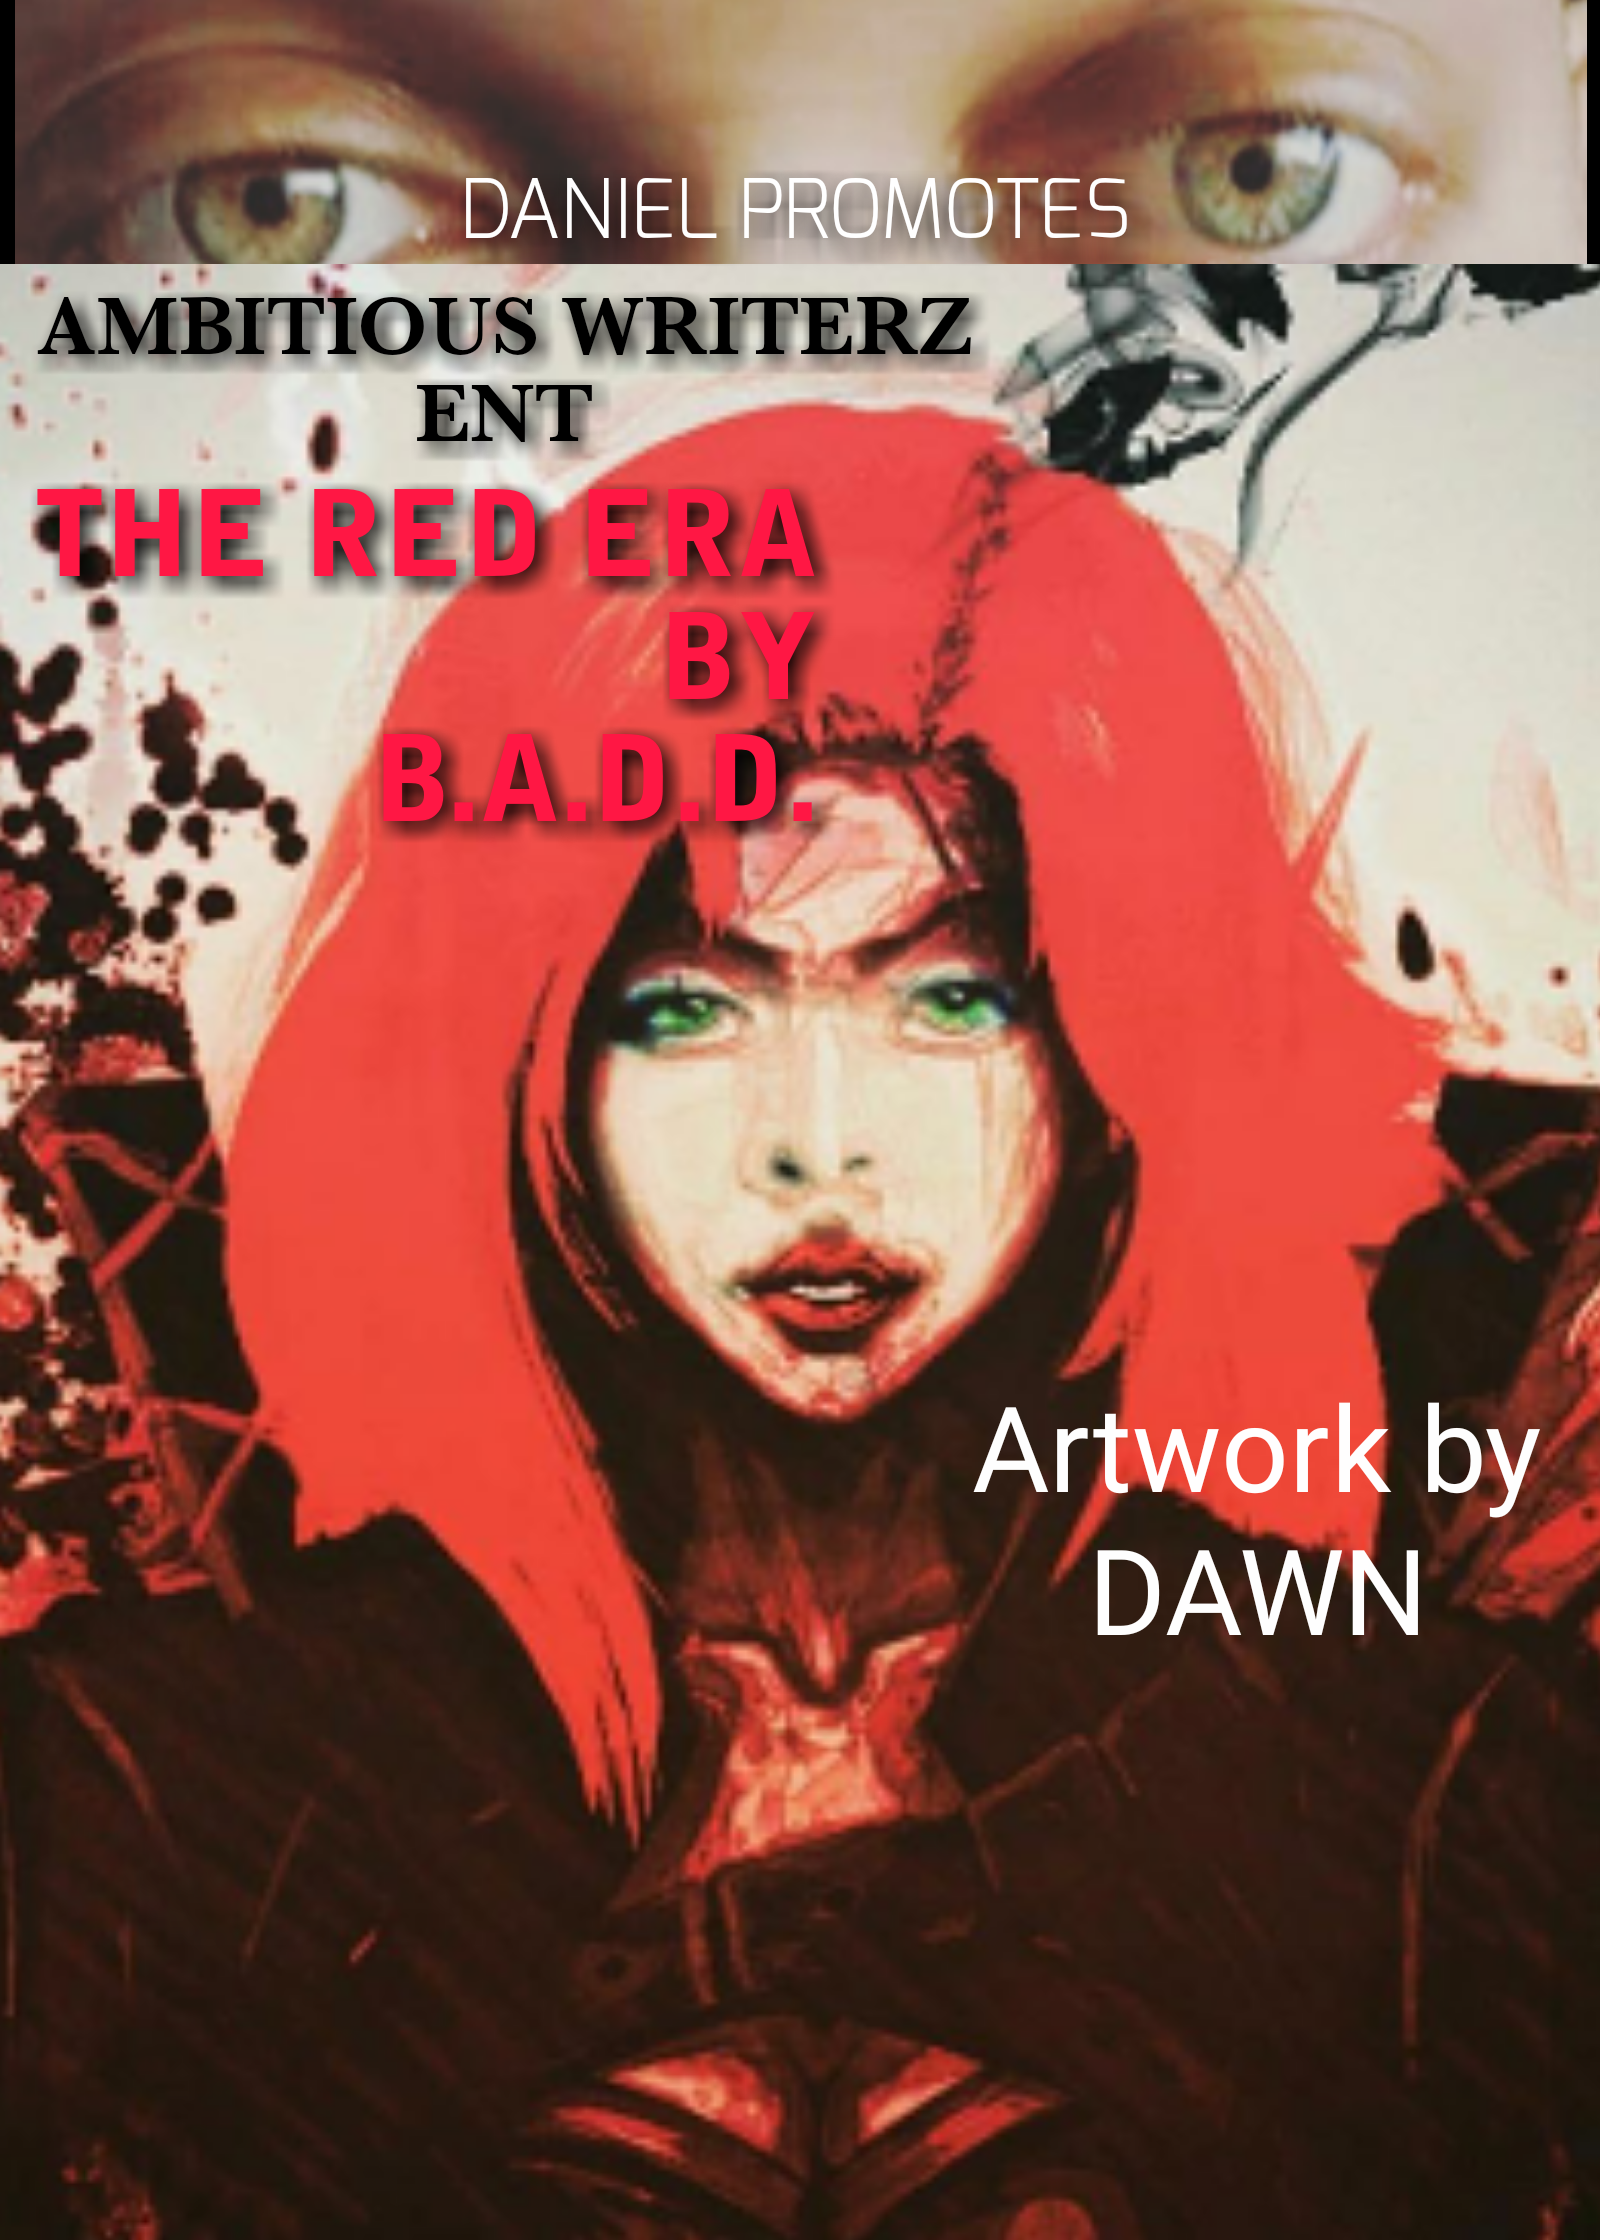 The Red Era new mixtape from BADD